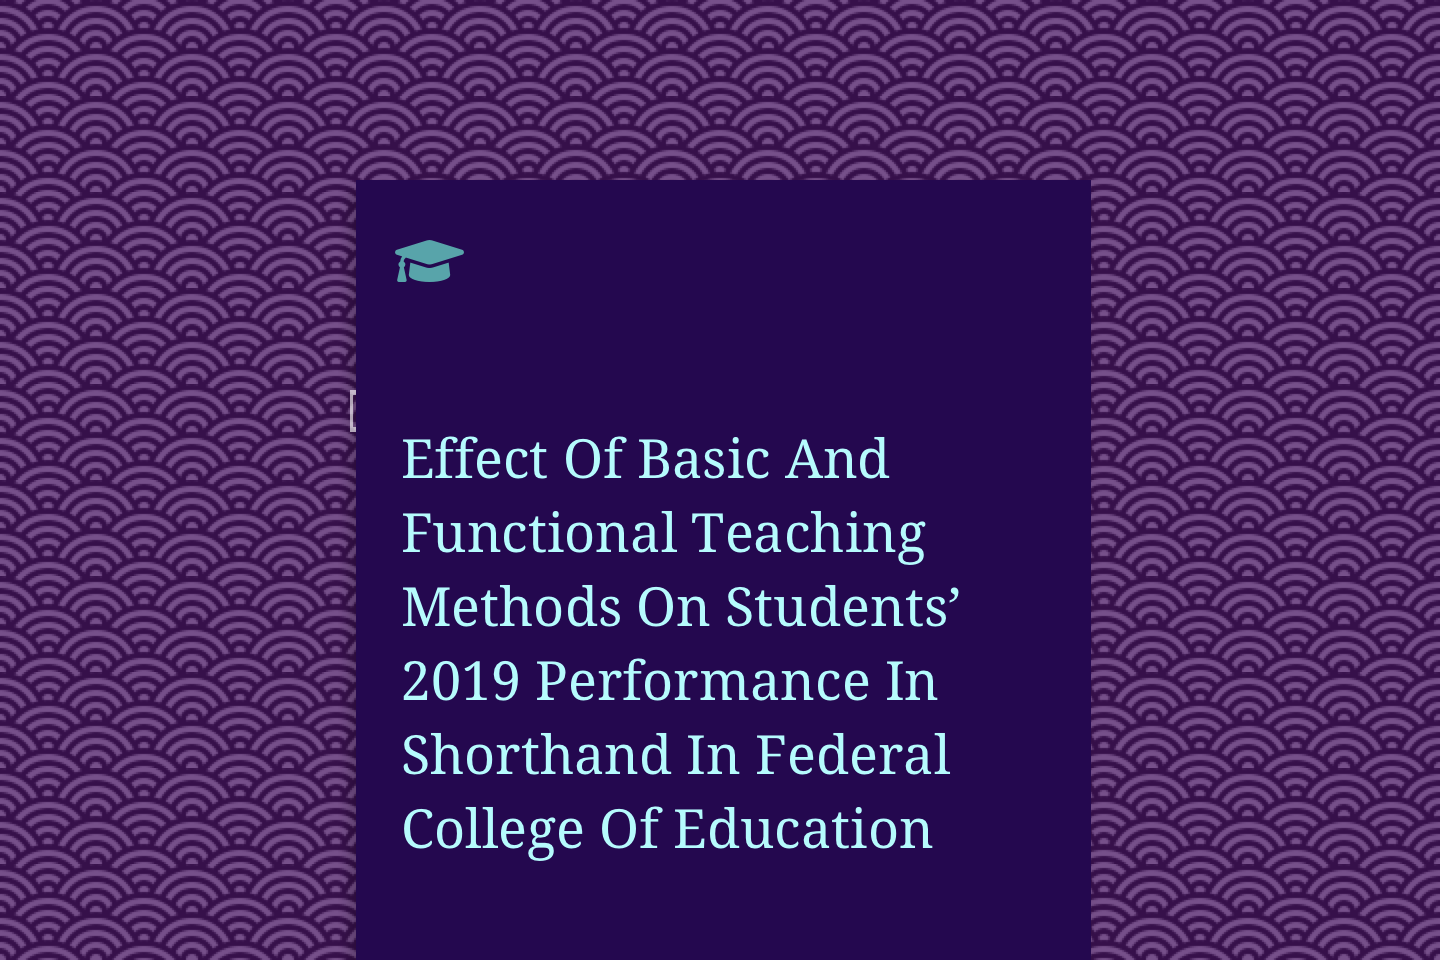 Effect Of Basic And Functional Teaching Methods On Students' 2019 Performance In Shorthand In Federal College Of Education